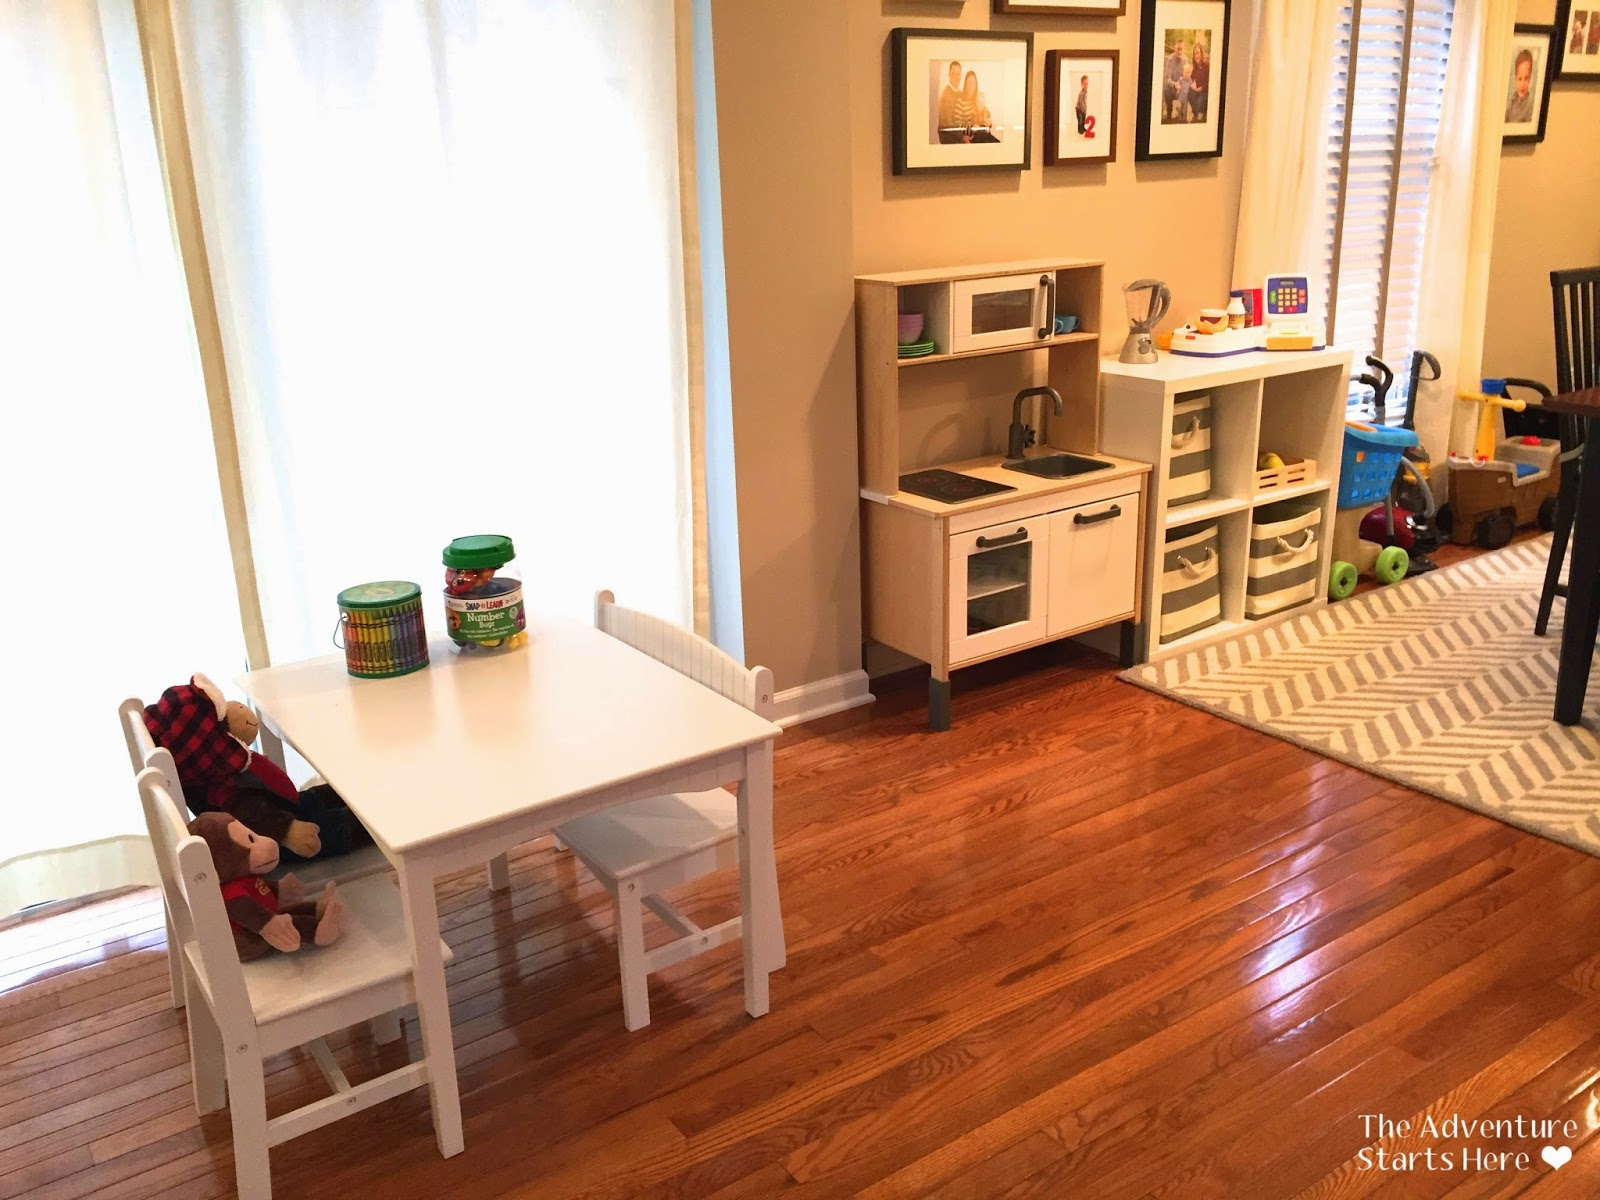 ... His Toy Food, Pots And Pans, Melissa And Doug Cutting Sets, And His  Appliances. I Also Ordered Some Bins From Land Of Nod To Hide It All And  Make It ...